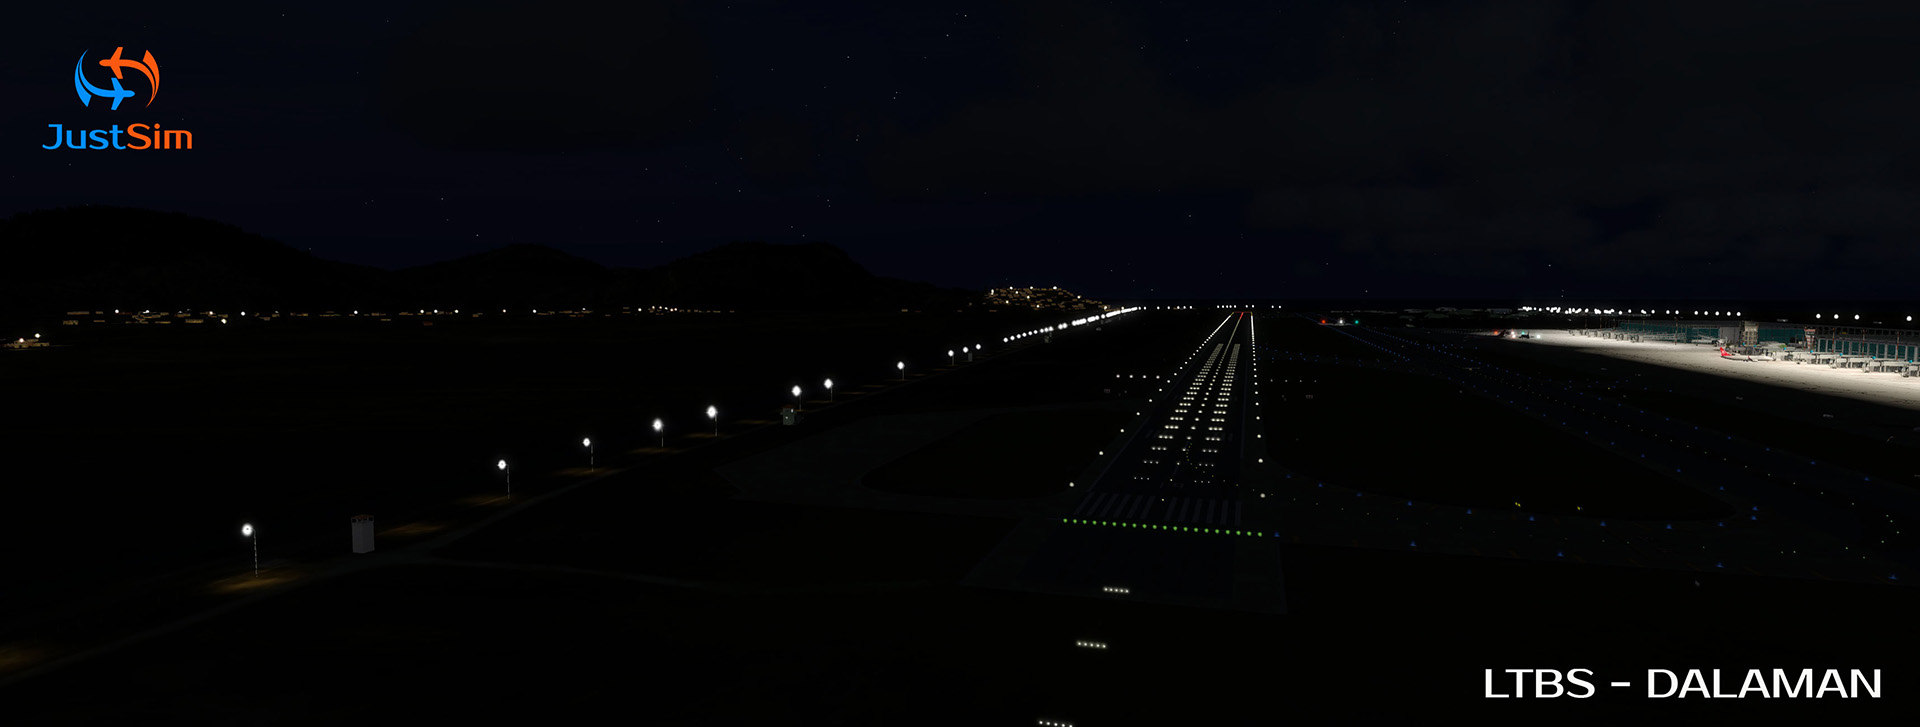 JUSTSIM - DALAMAN INTERNATIONAL AIRPORT P3D4